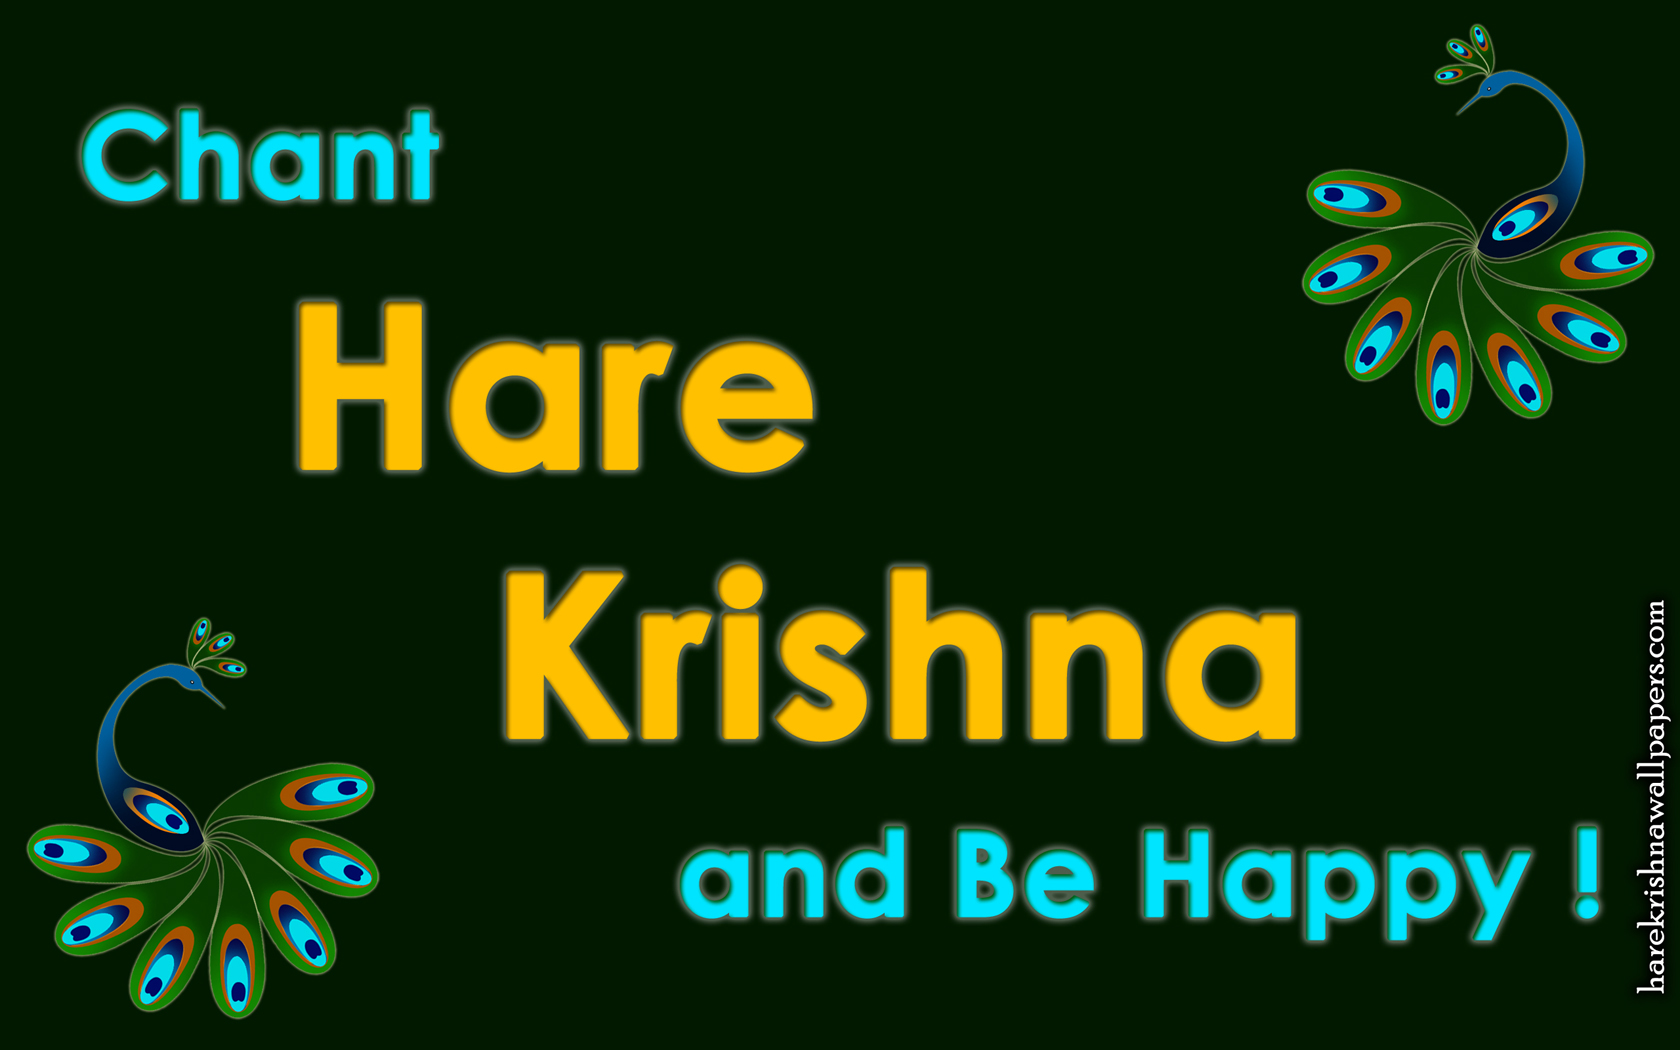 Chant Hare Krishna and be happy Wallpaper (006) Size 1680x1050 Download